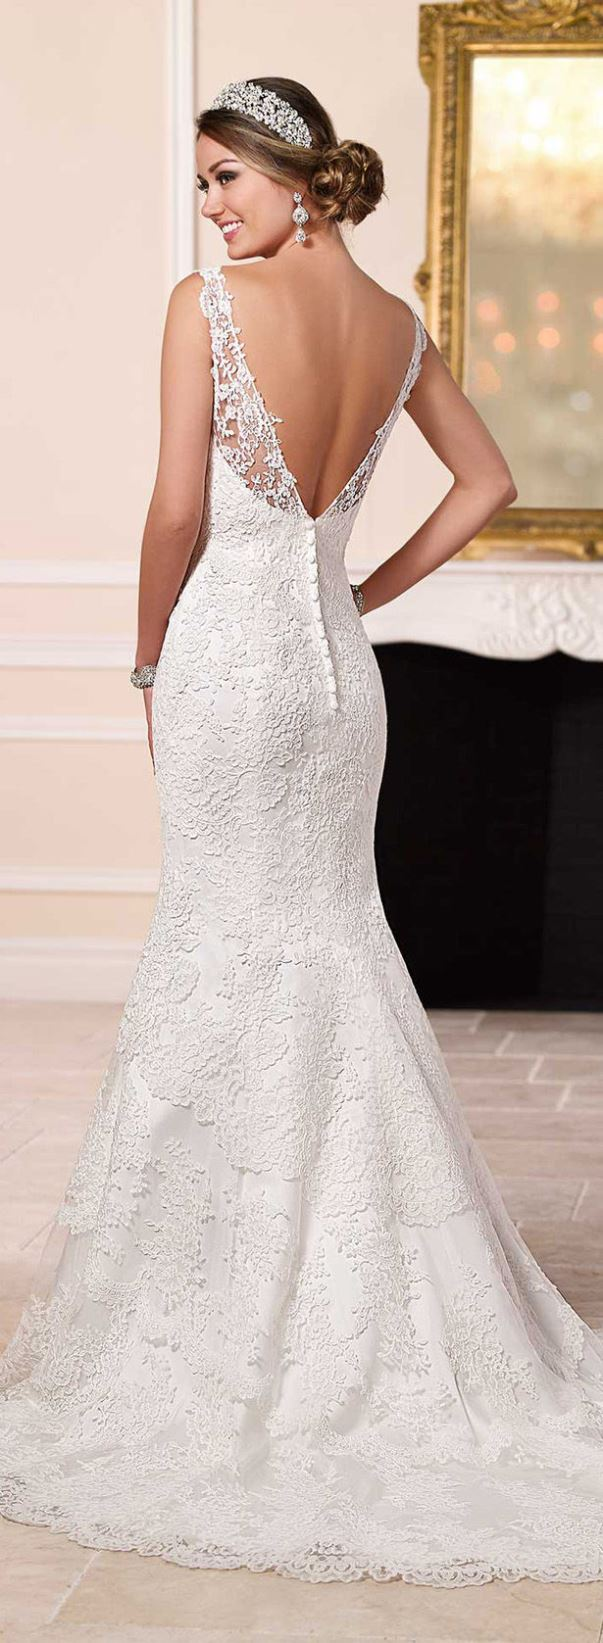 Stella York 2016 Bridal Collection LoveweddingsNG13